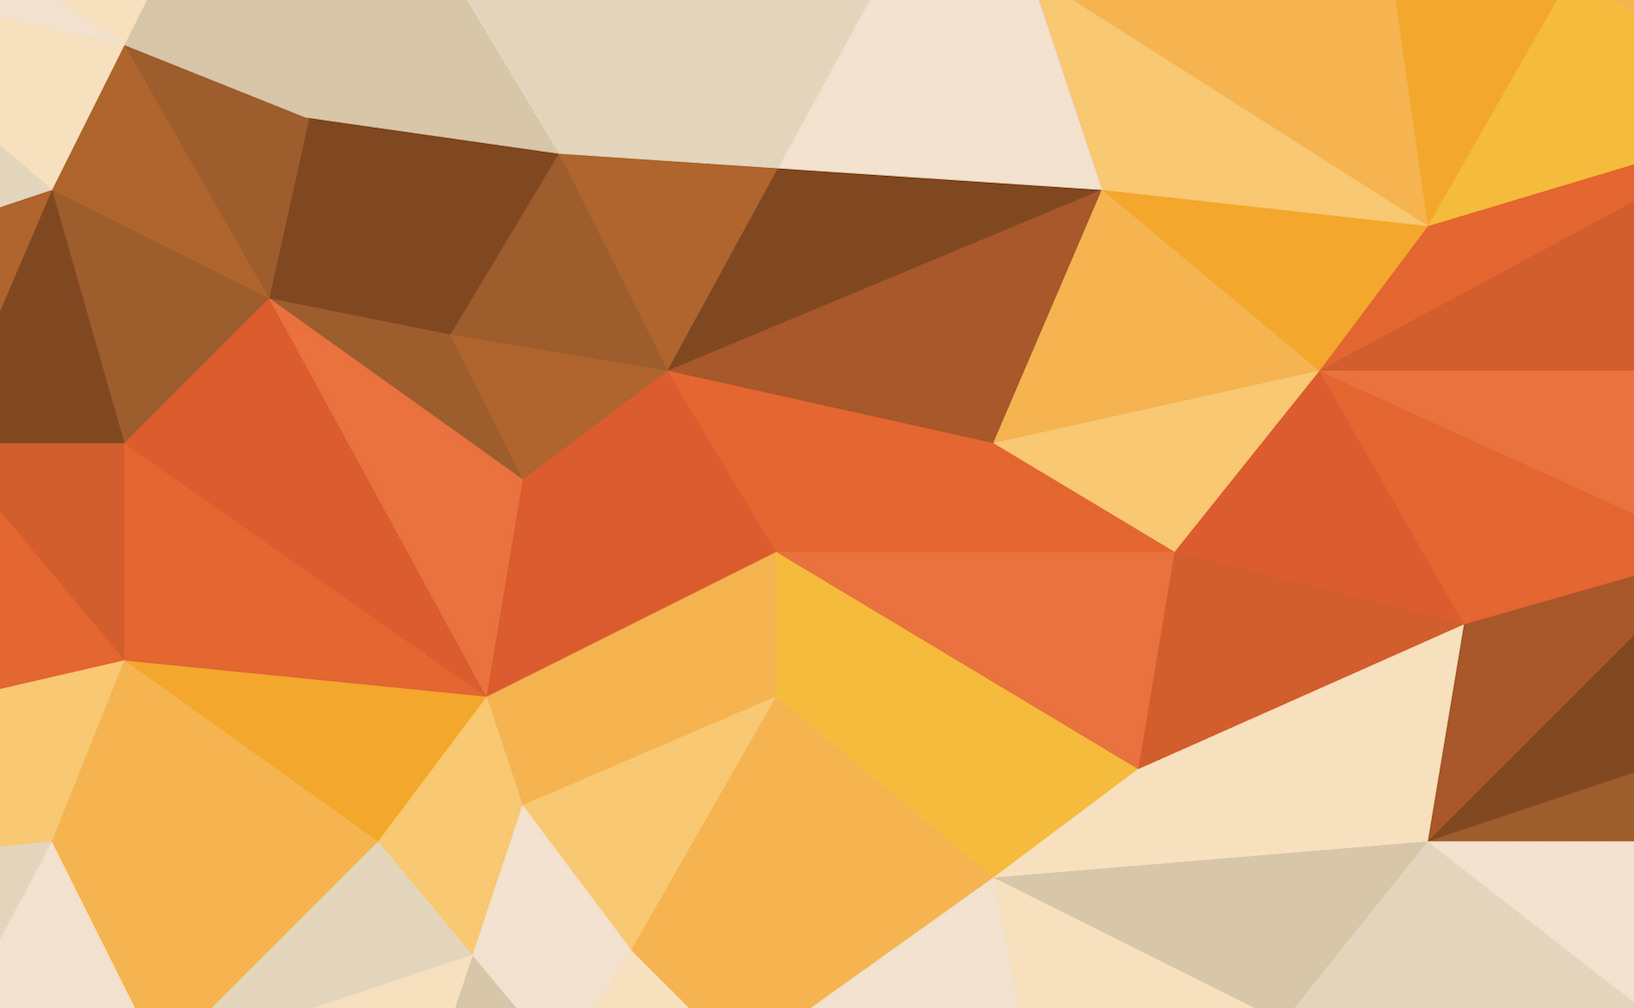 Polygon Wallpapers For Iphone – Epic Wallpaperz